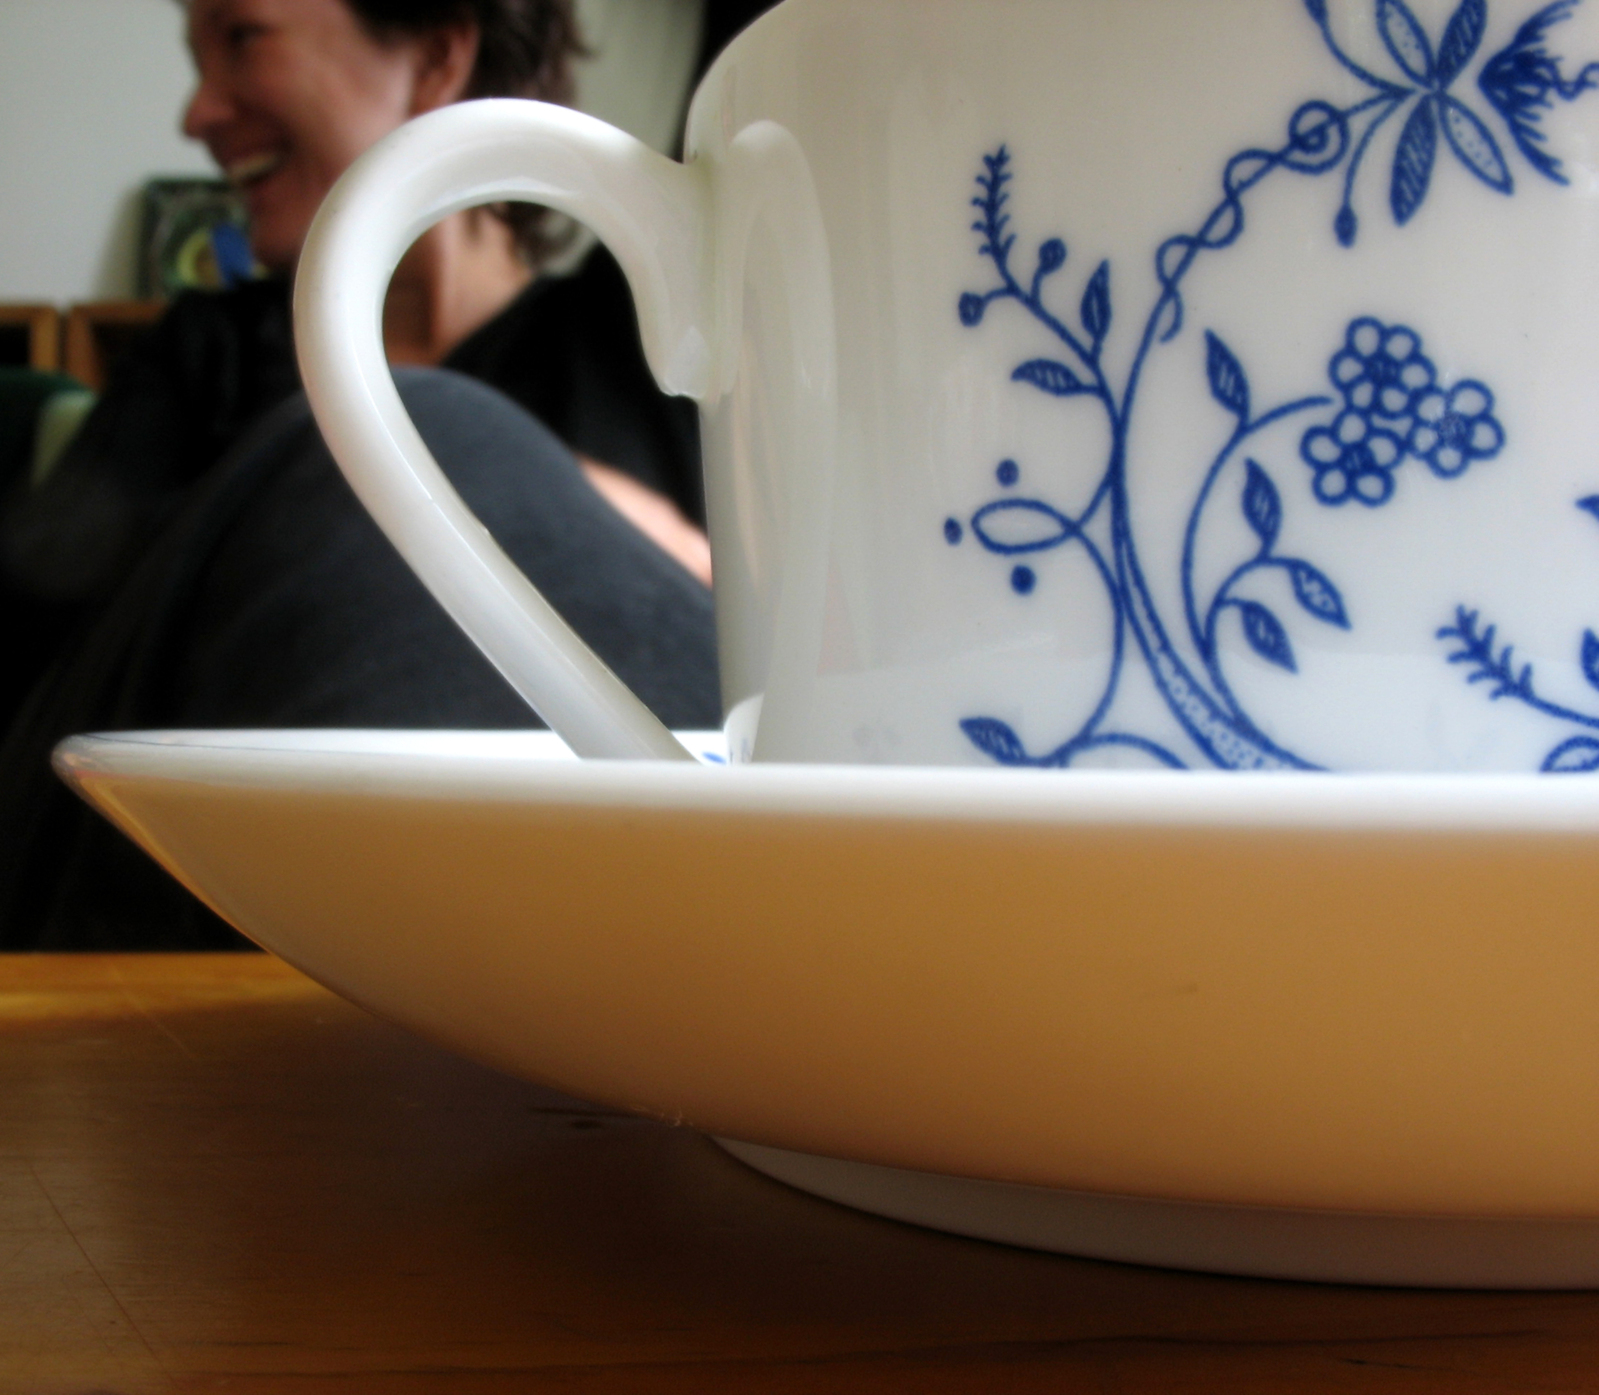 Mum's cup of tea for Mother's day